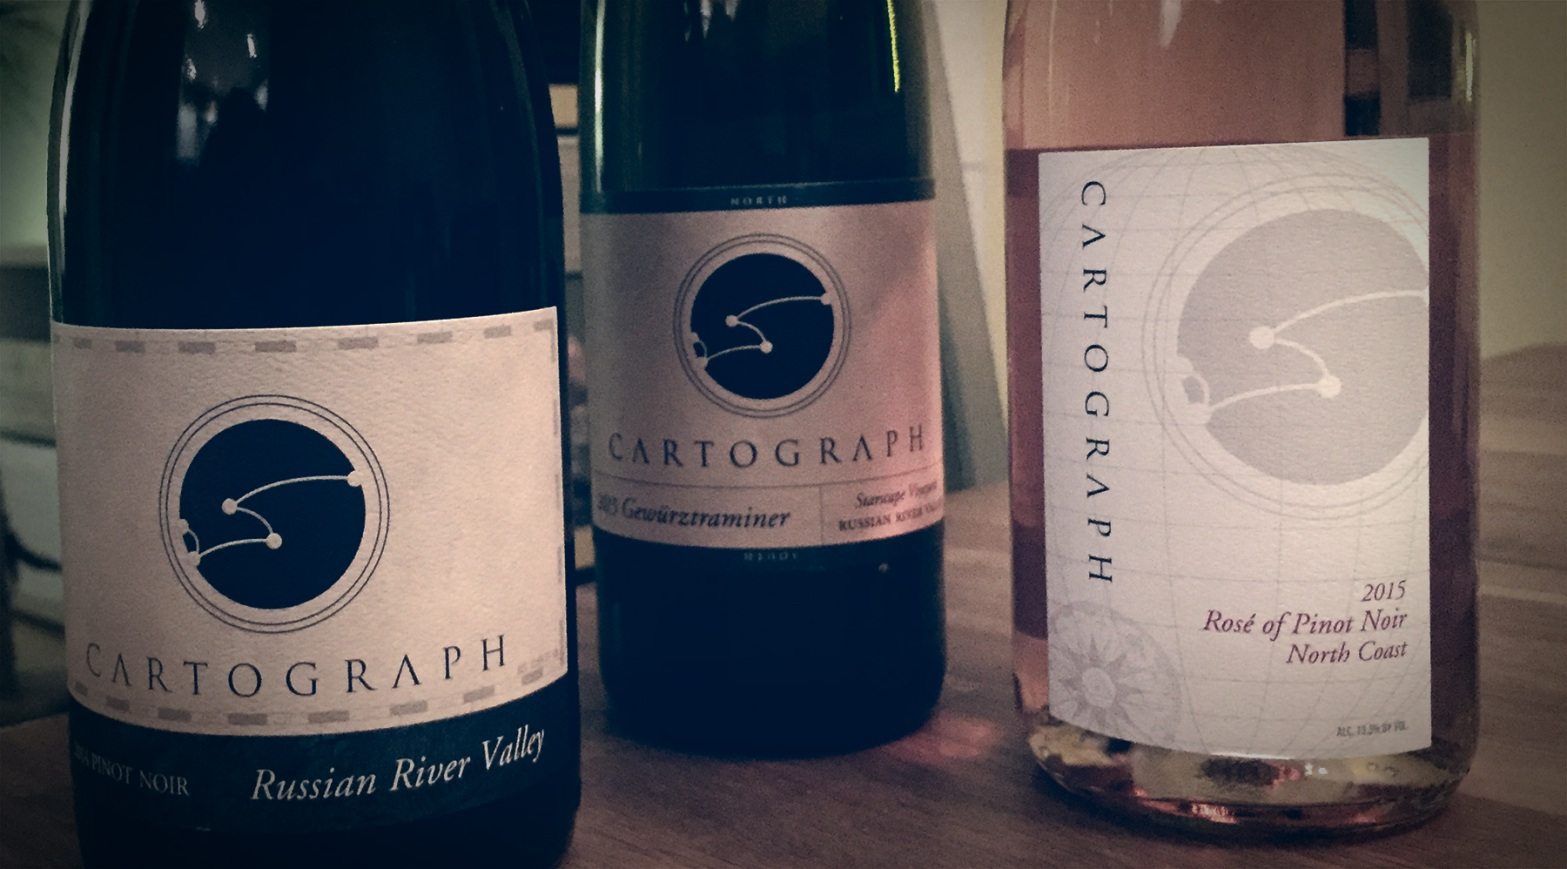 Cartograph Wines